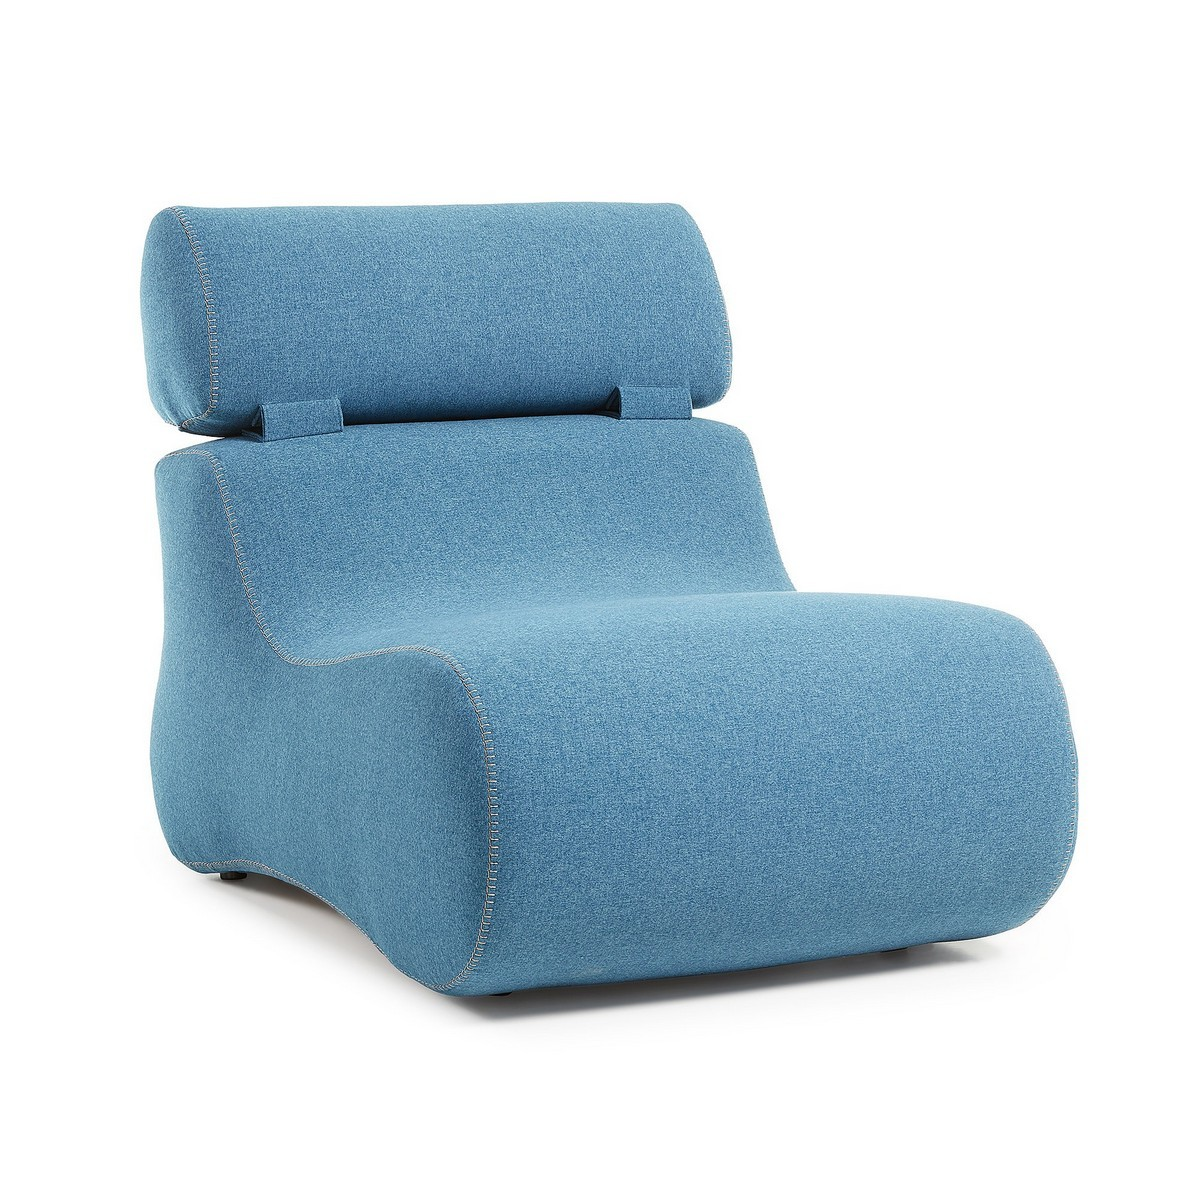 Novella Fabric Lounge Chair, Denim Blue